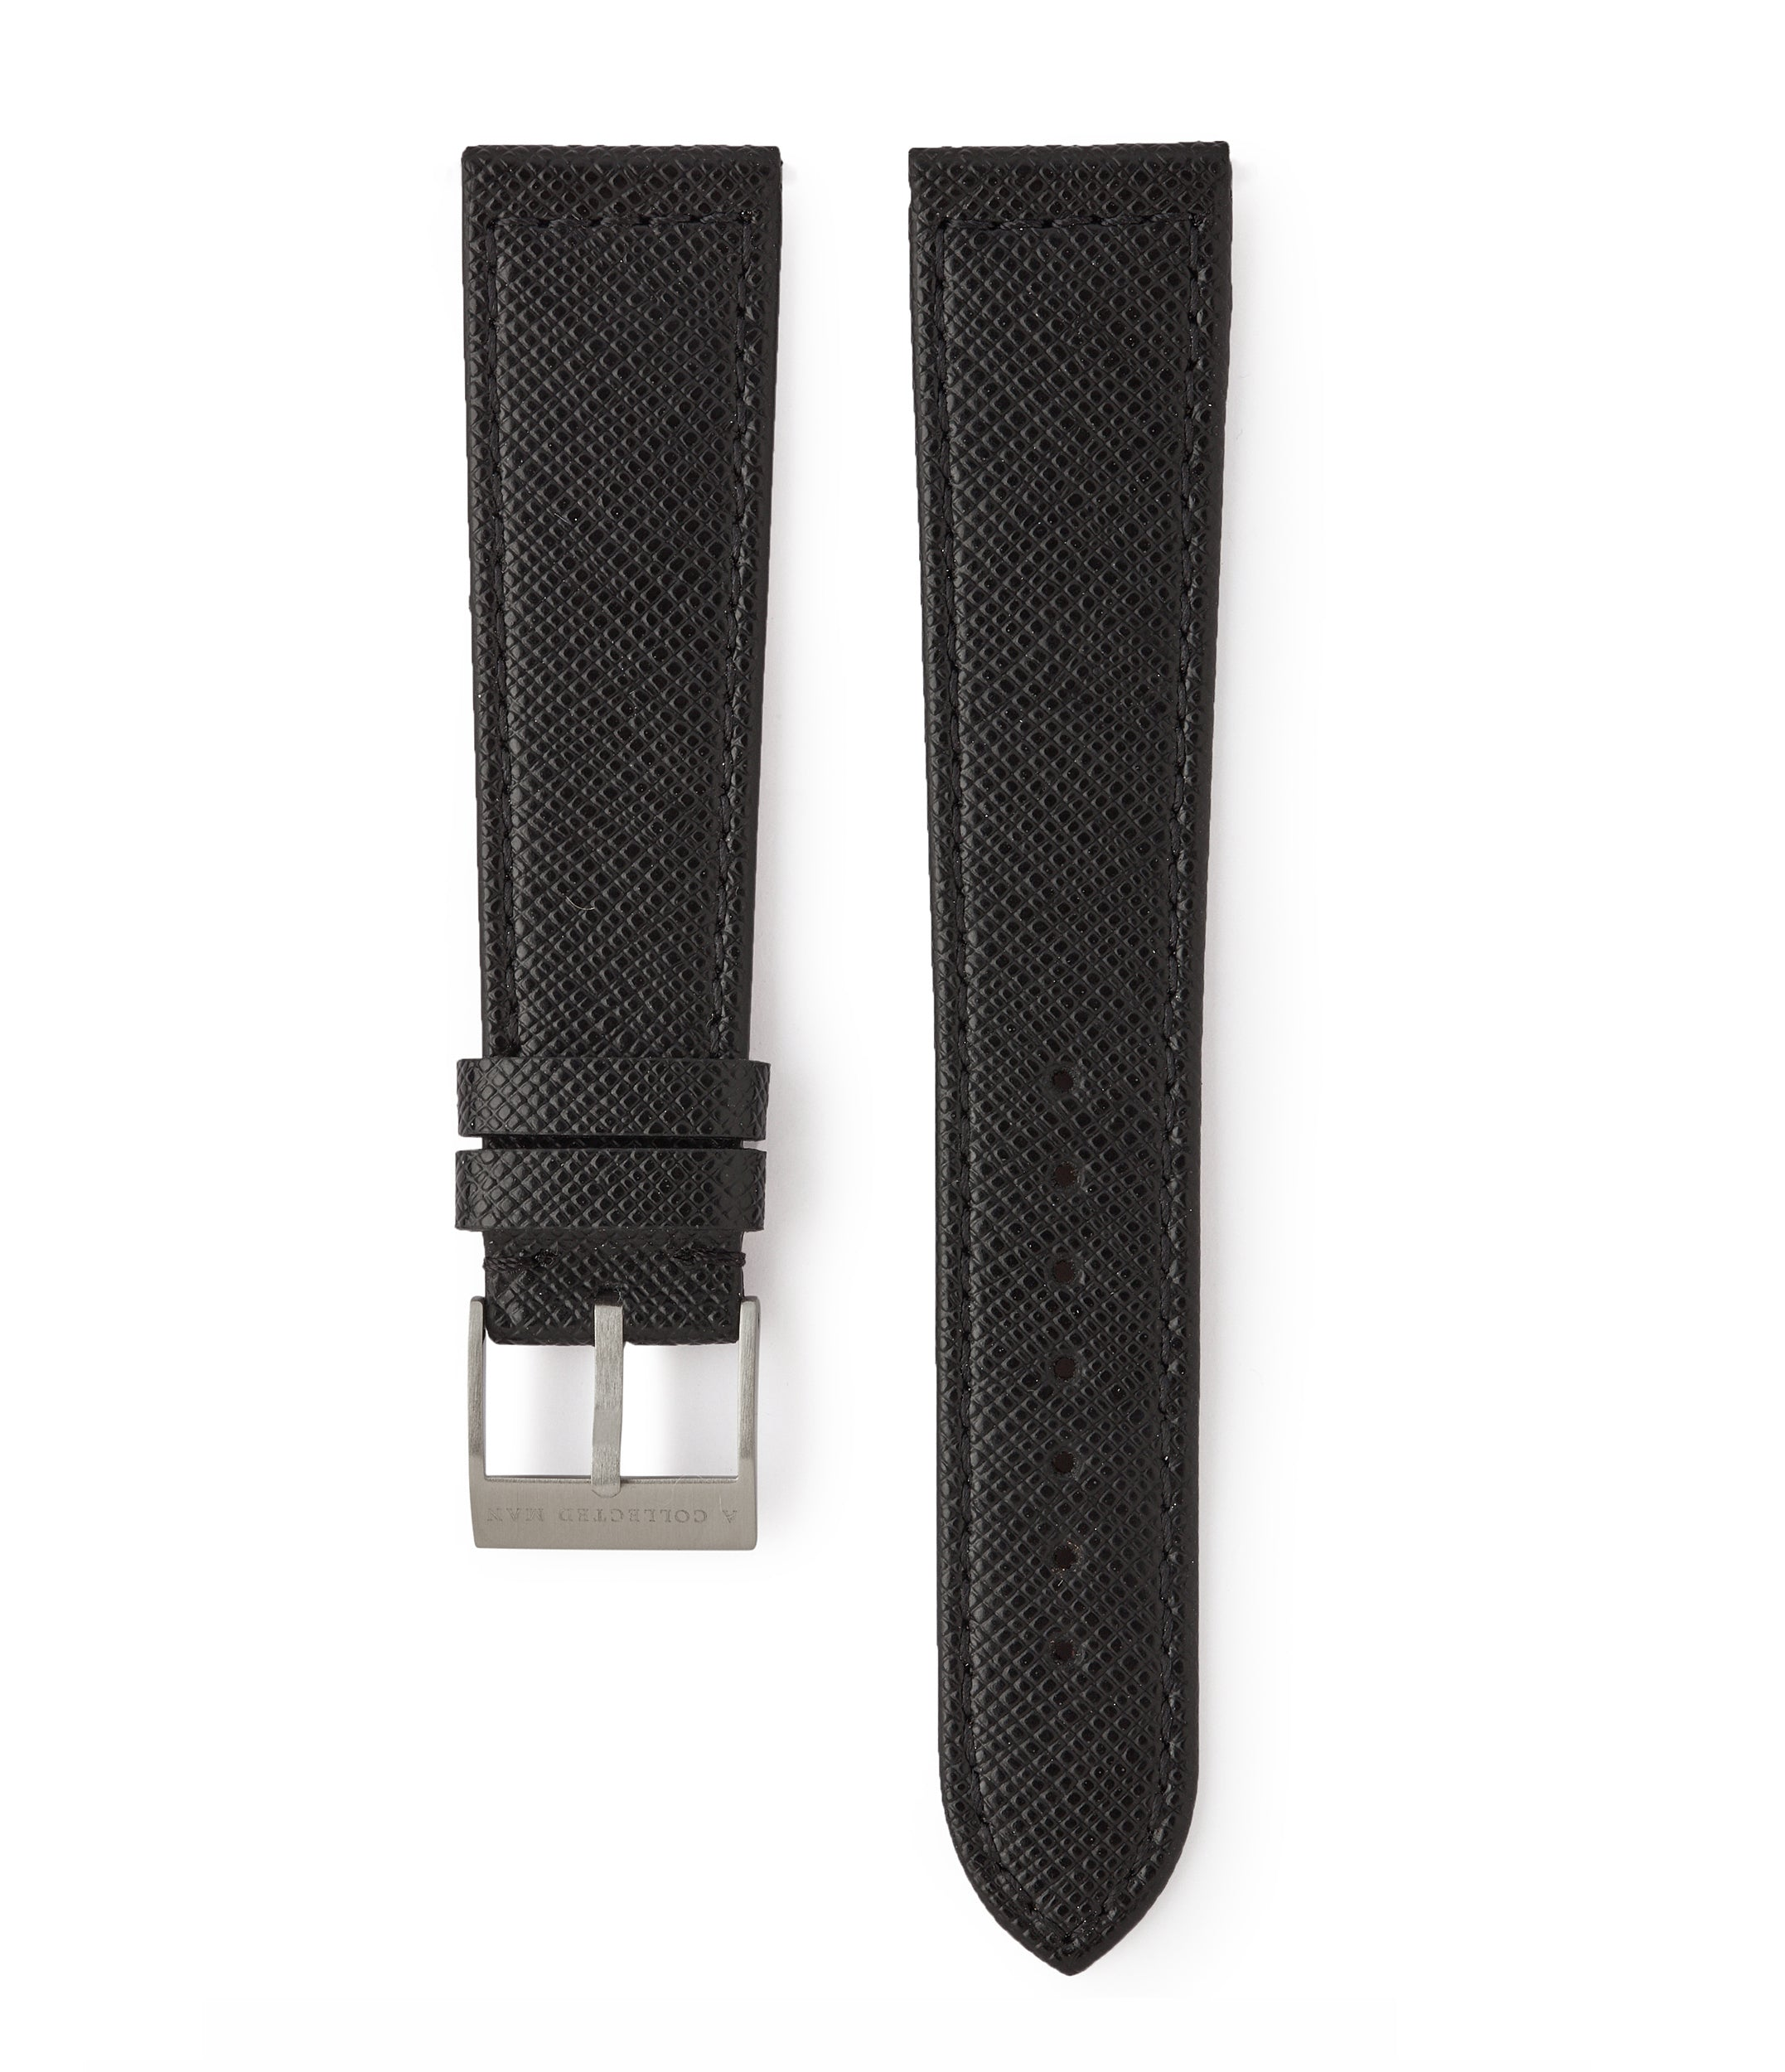 buy black Saffiano Milano cross-grained luxury leather 18mm watch strap with boxed stitching for sale online at A Collected Man London